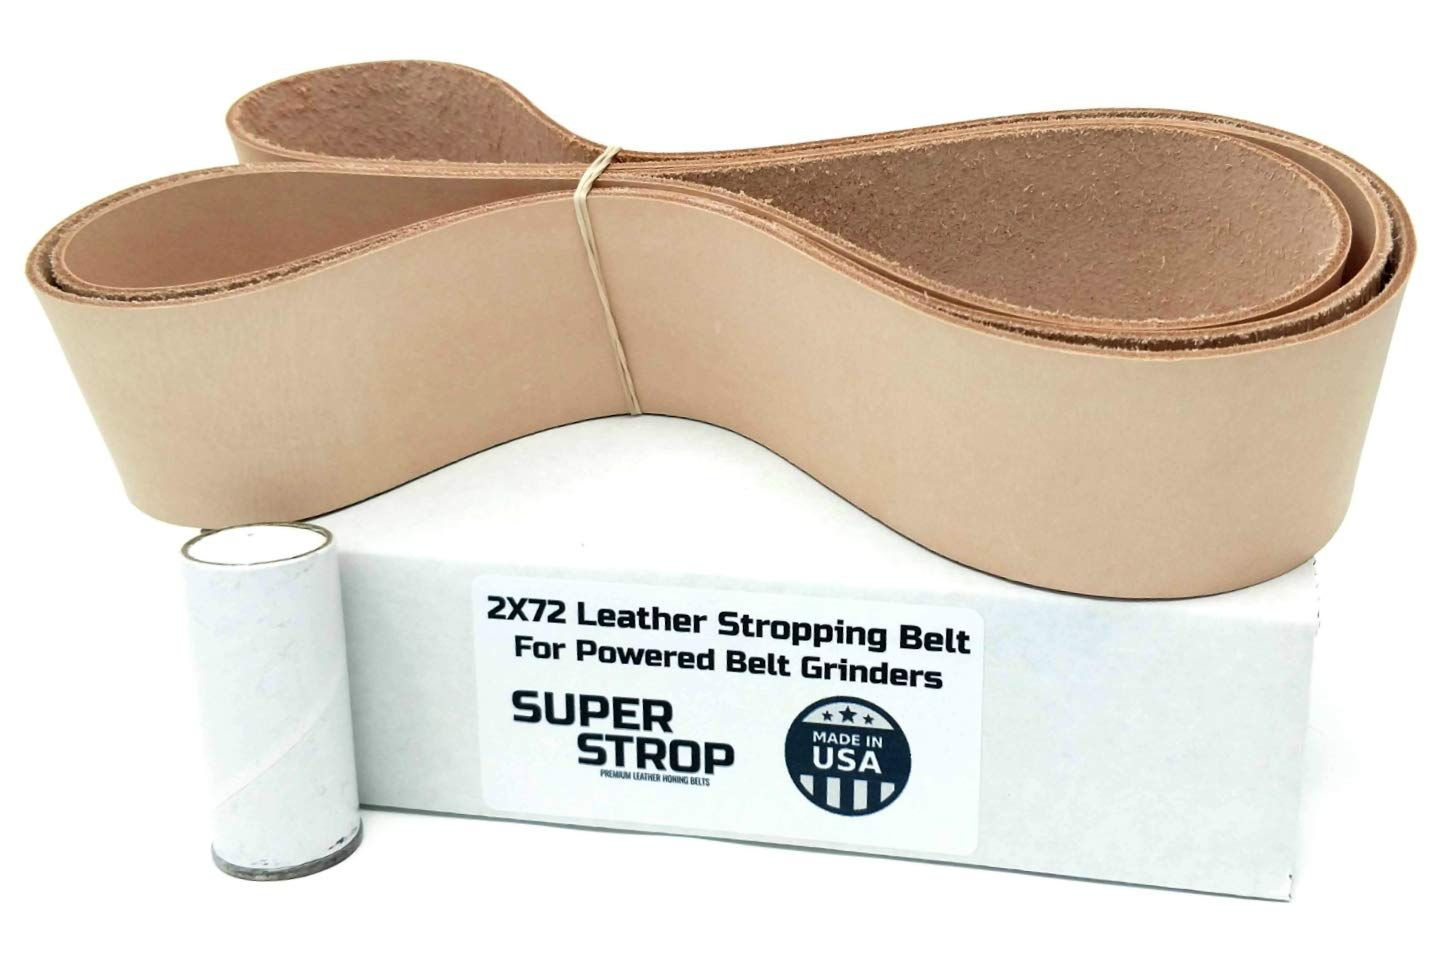 2x72 Inch Super Strop Leather Honing Stropping Belt For 2x72 Belt